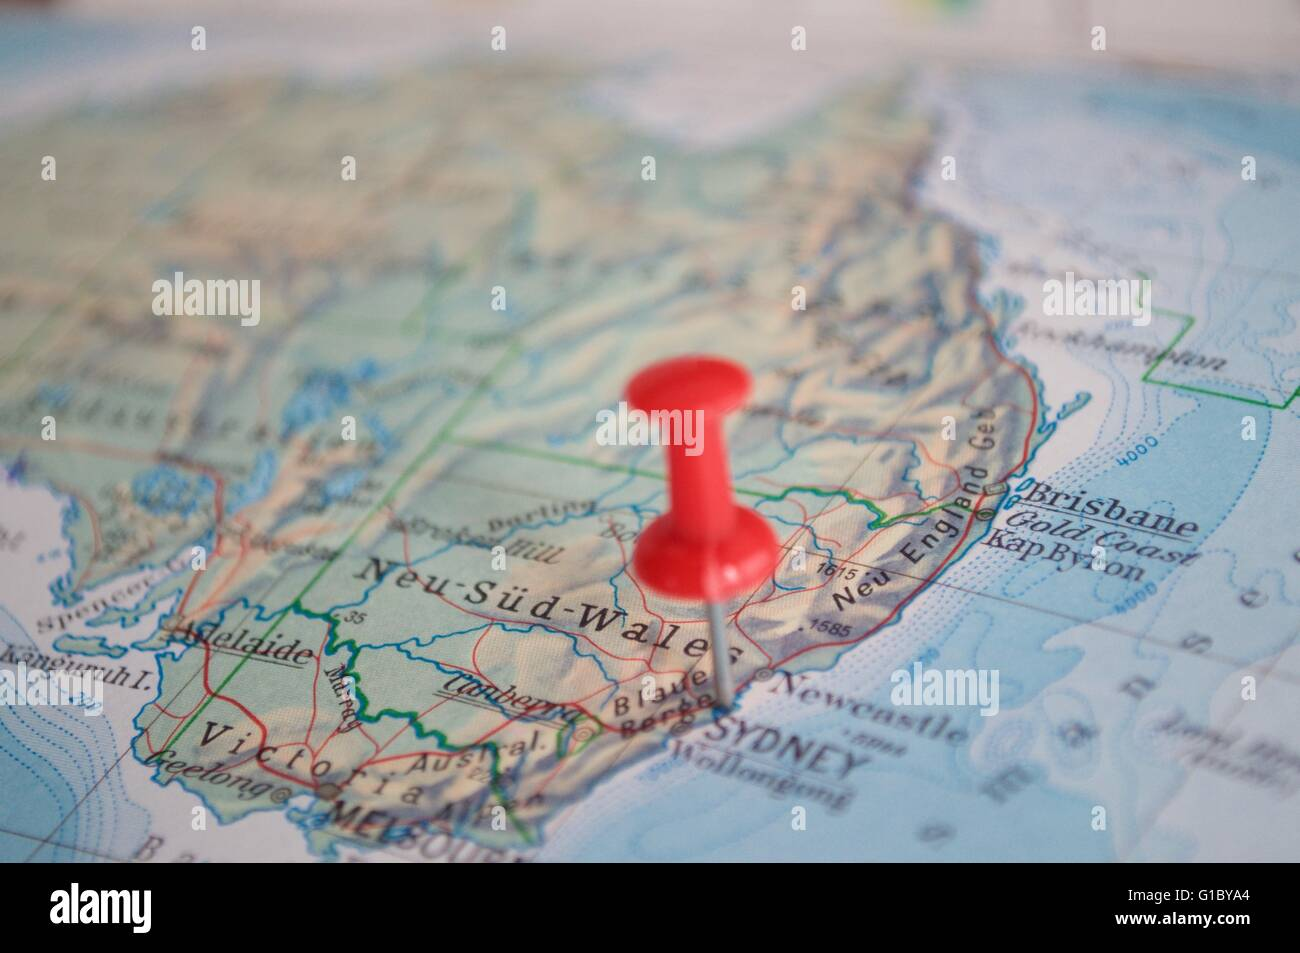 Sydney marked with pin on map with selective focus stock photo sydney marked with pin on map with selective focus gumiabroncs Gallery